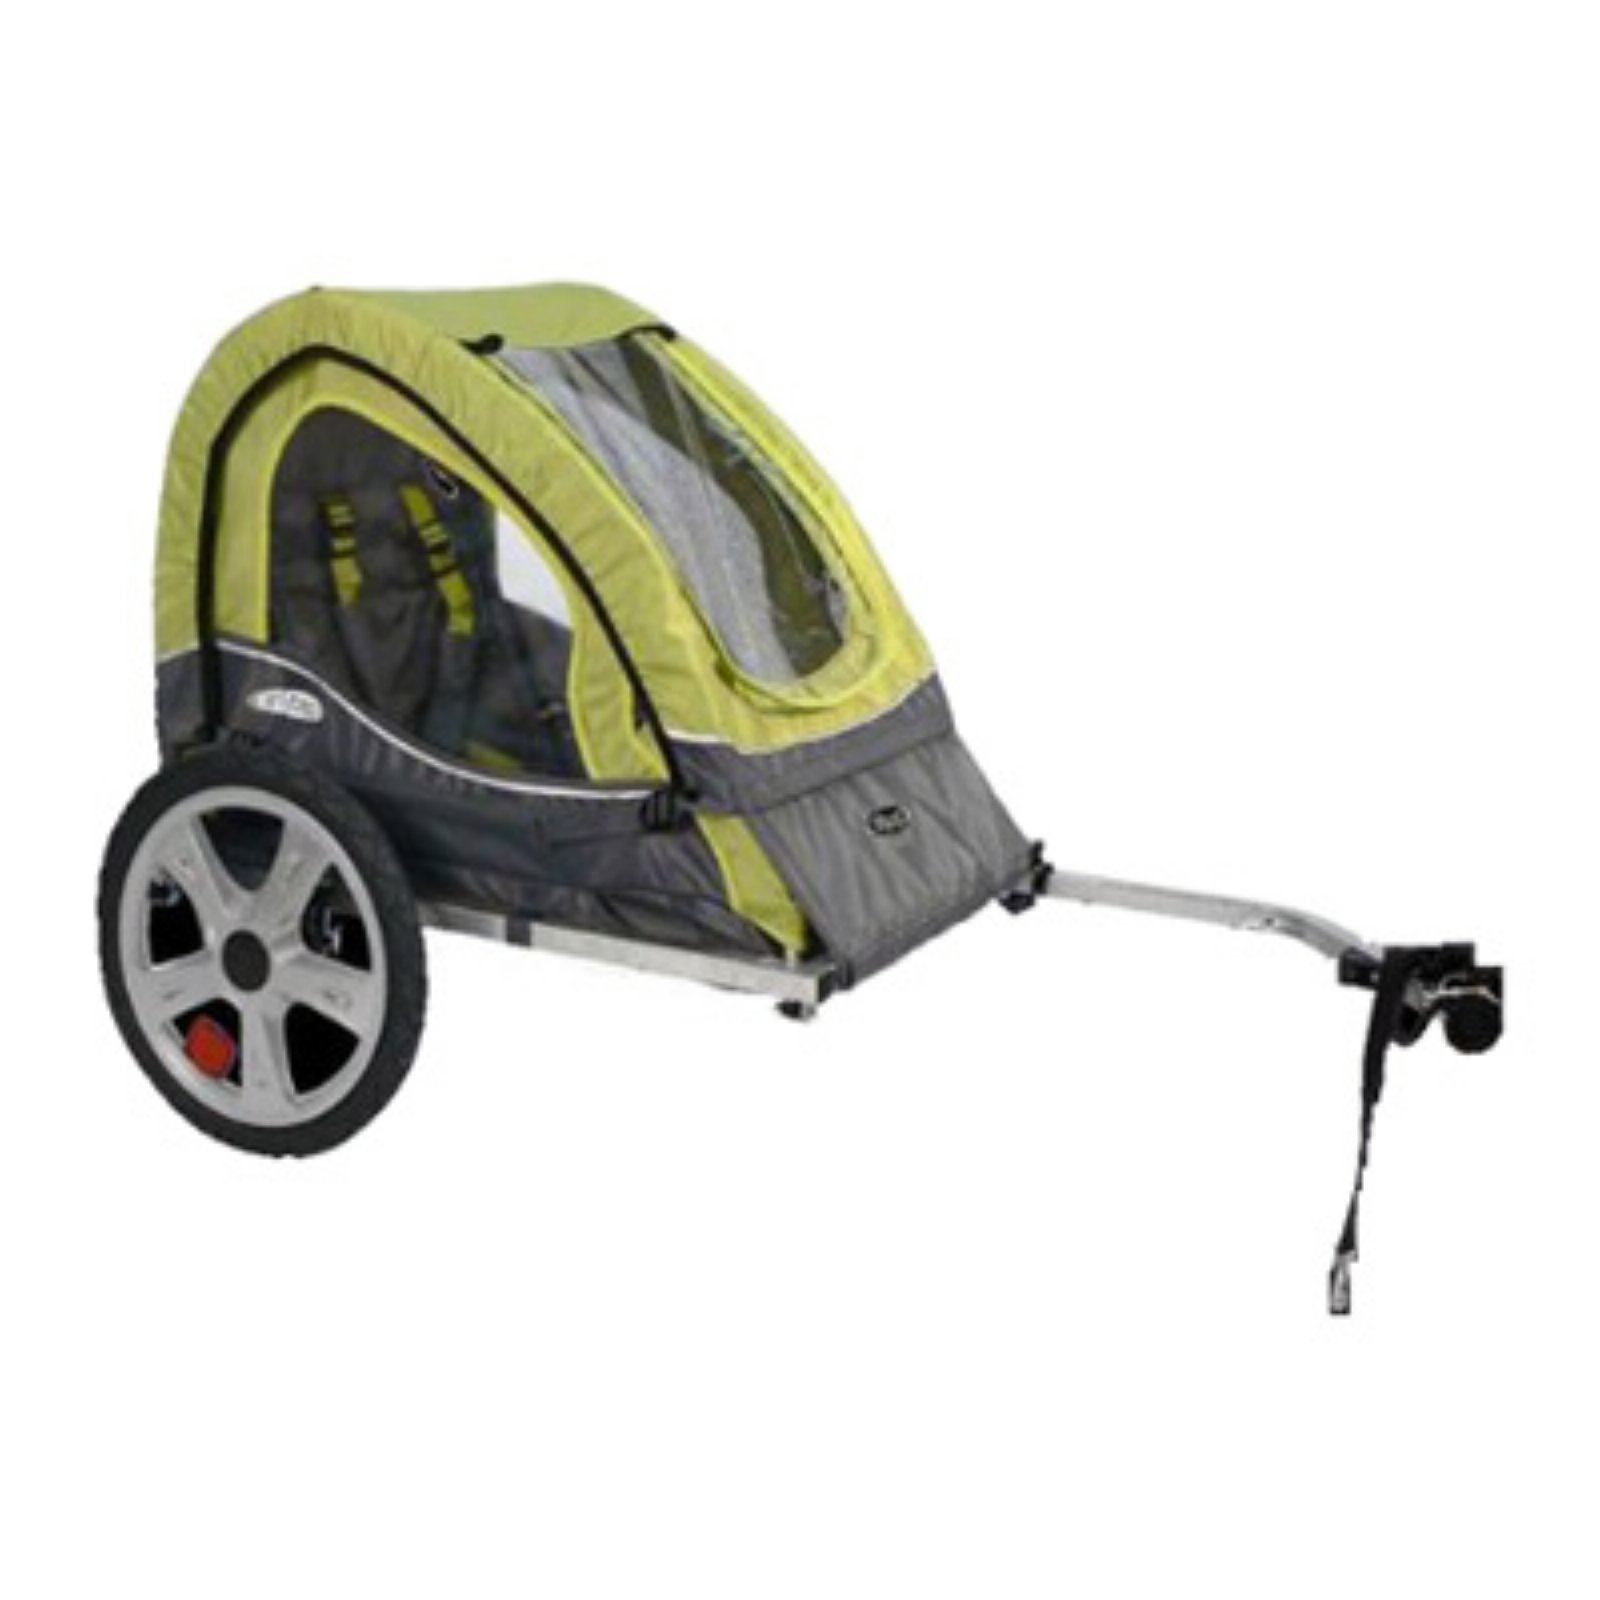 InStep Sync Single Child Bike Trailer Green Grey by Pacific Cycle